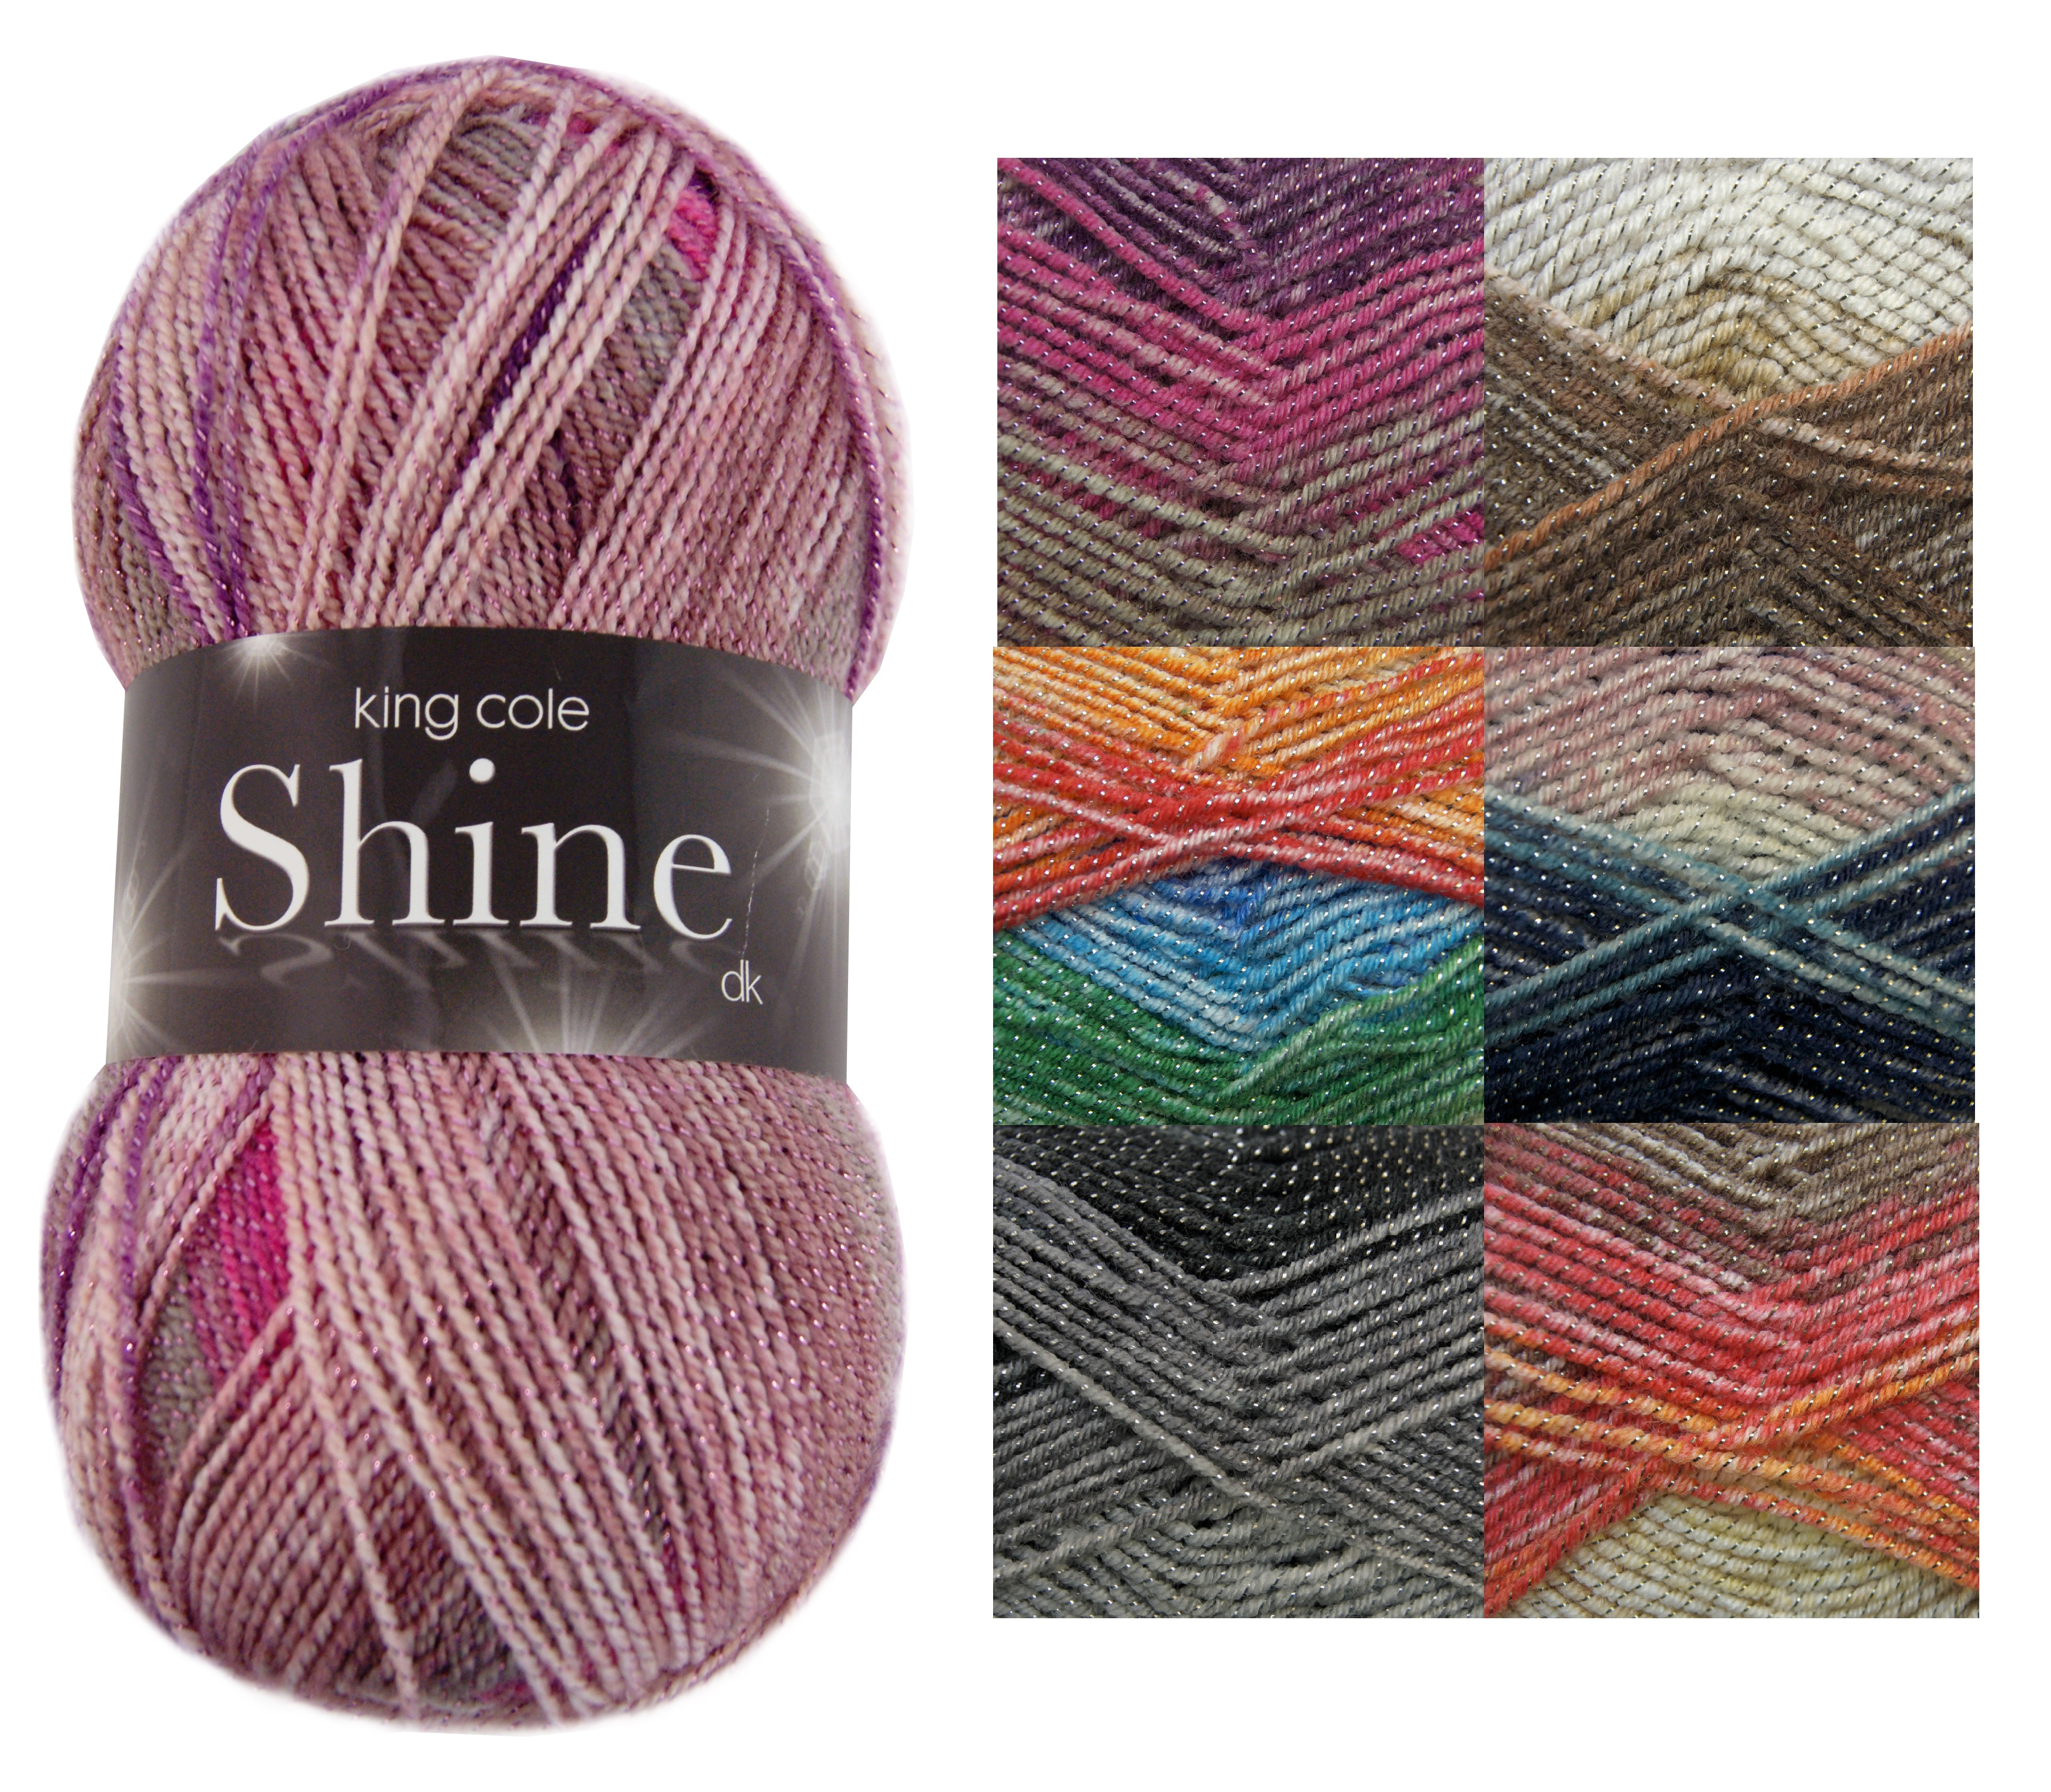 Knitting Patterns For Double Chunky Wool : 100g Ball Shine DK Double Knitting Wool King Cole Acrylic Blend Sparkle Yarn ...